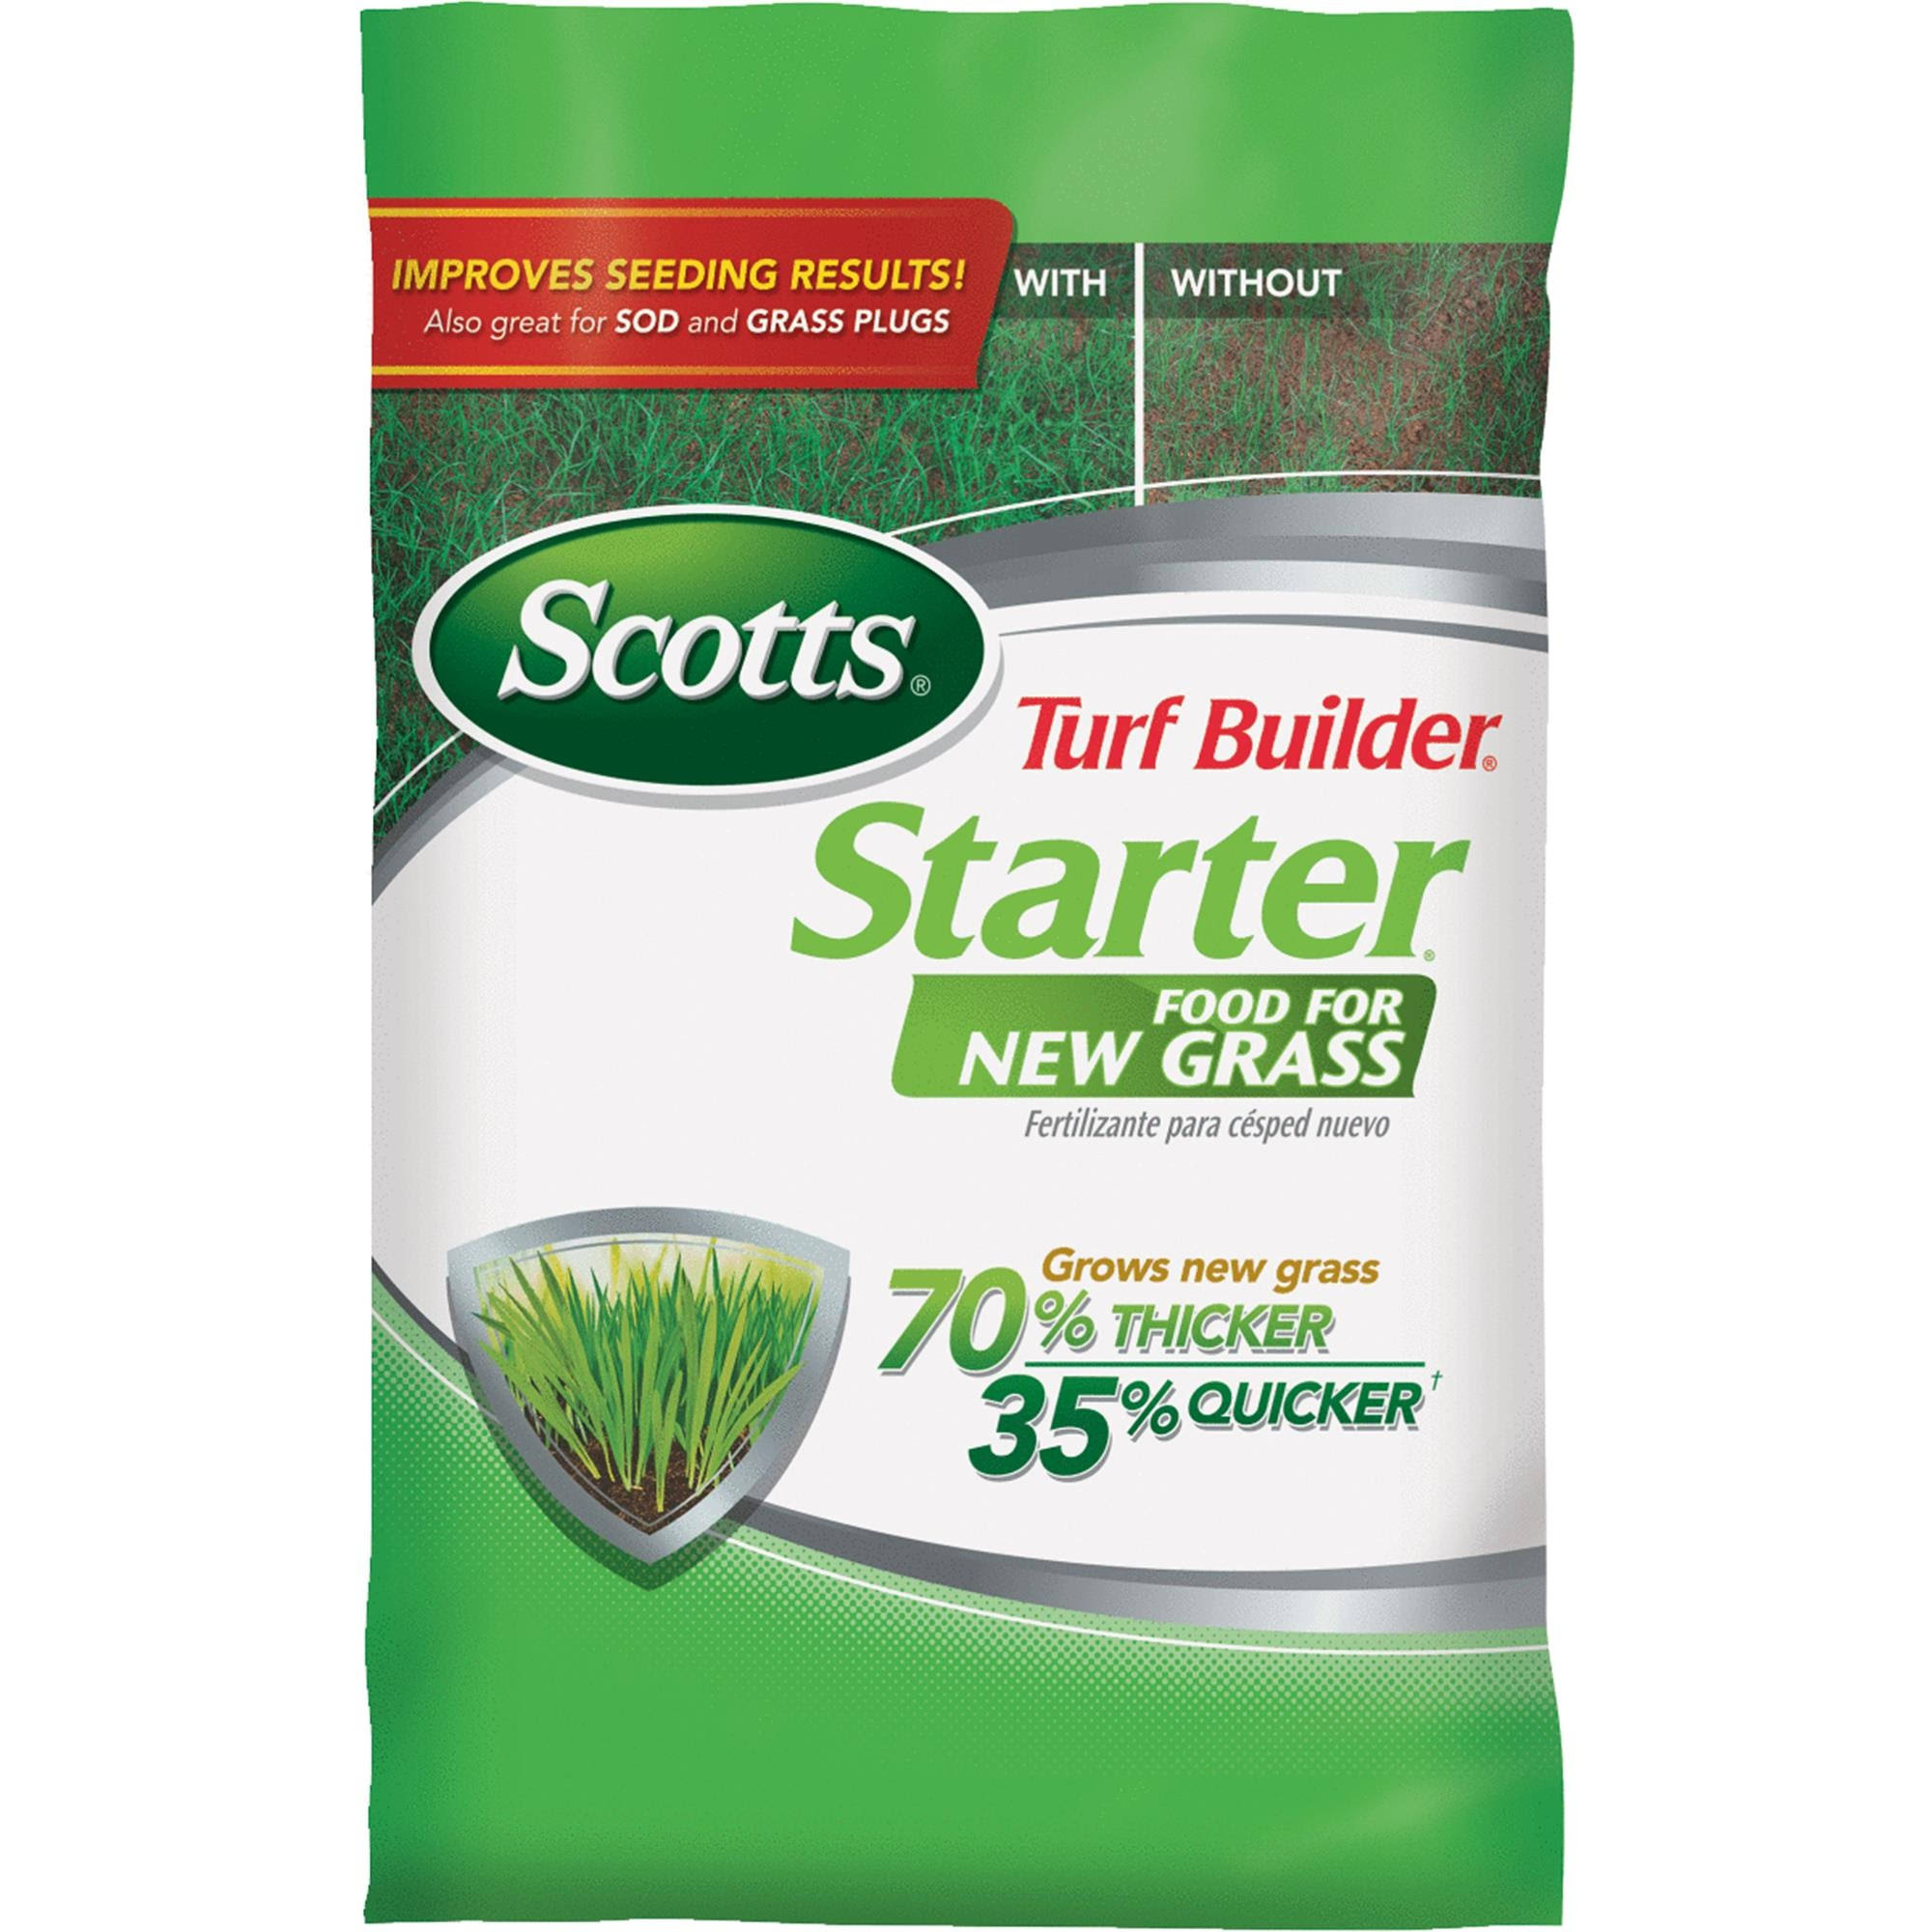 Scotts Turf Builder Starter Brand Fertilizer